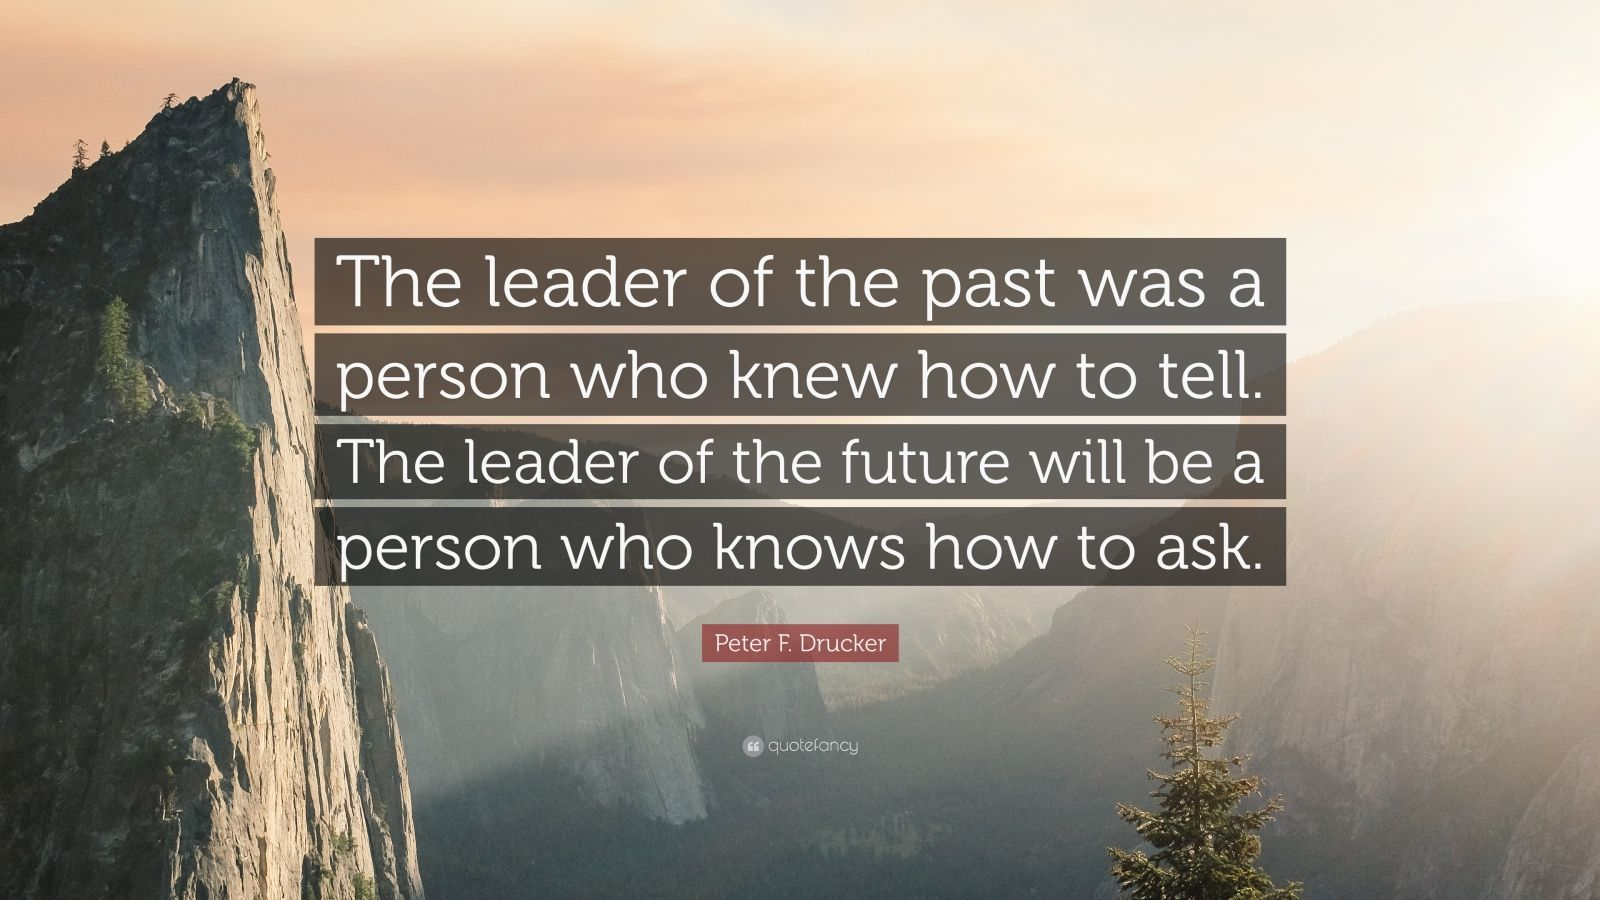 """Peter F. Drucker Quote: """"The leader of the past was a person who knew how to tell. The leader of the future will be a person who knows how to ask."""""""